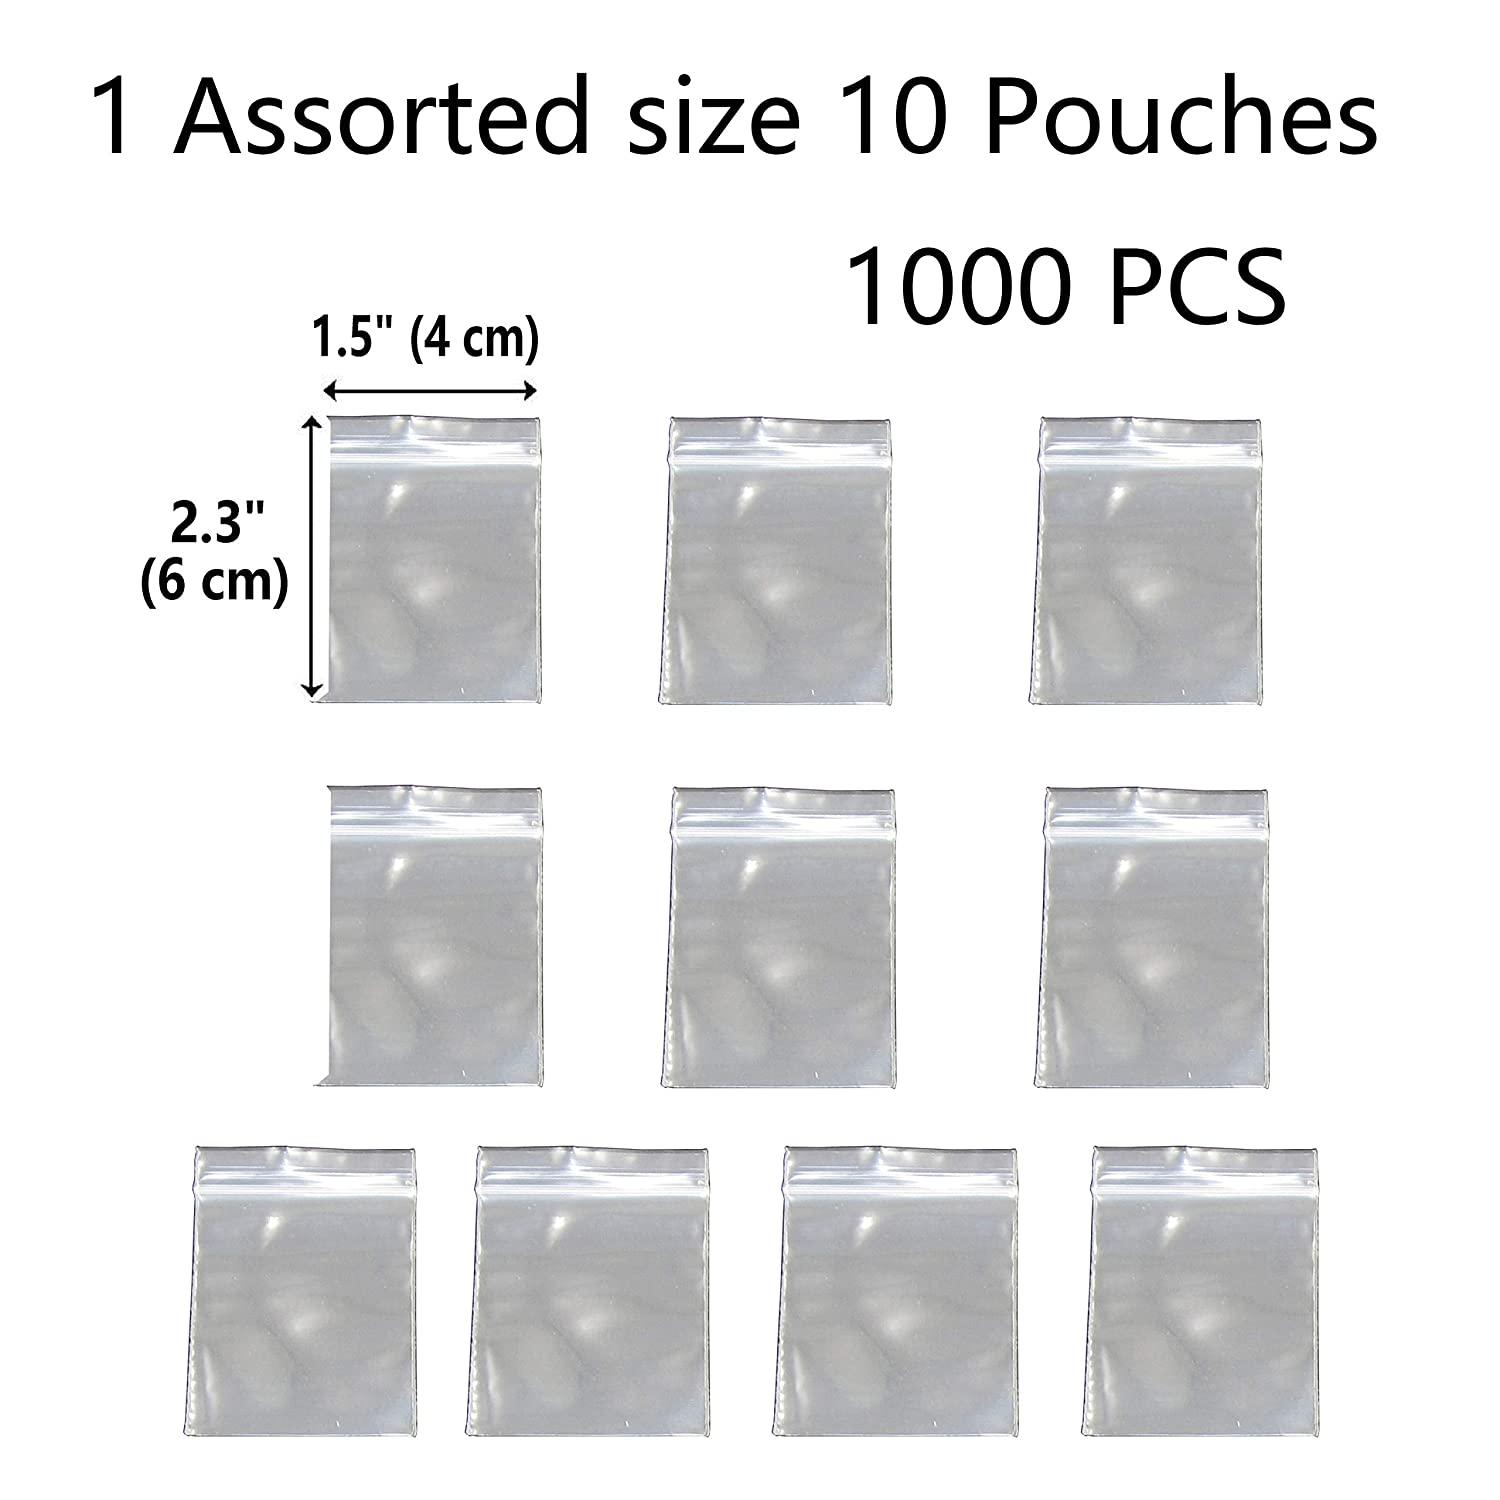 1000 Pack 2 Mil Thick Poly Ziplock Bags, 1.5x2.3 Inch. Clear Durable Food Grade Safe PP Plastic Resealable Zipper Baggies for Jewelry, Bead, Toy Piece, Pill, Snack JBingGG